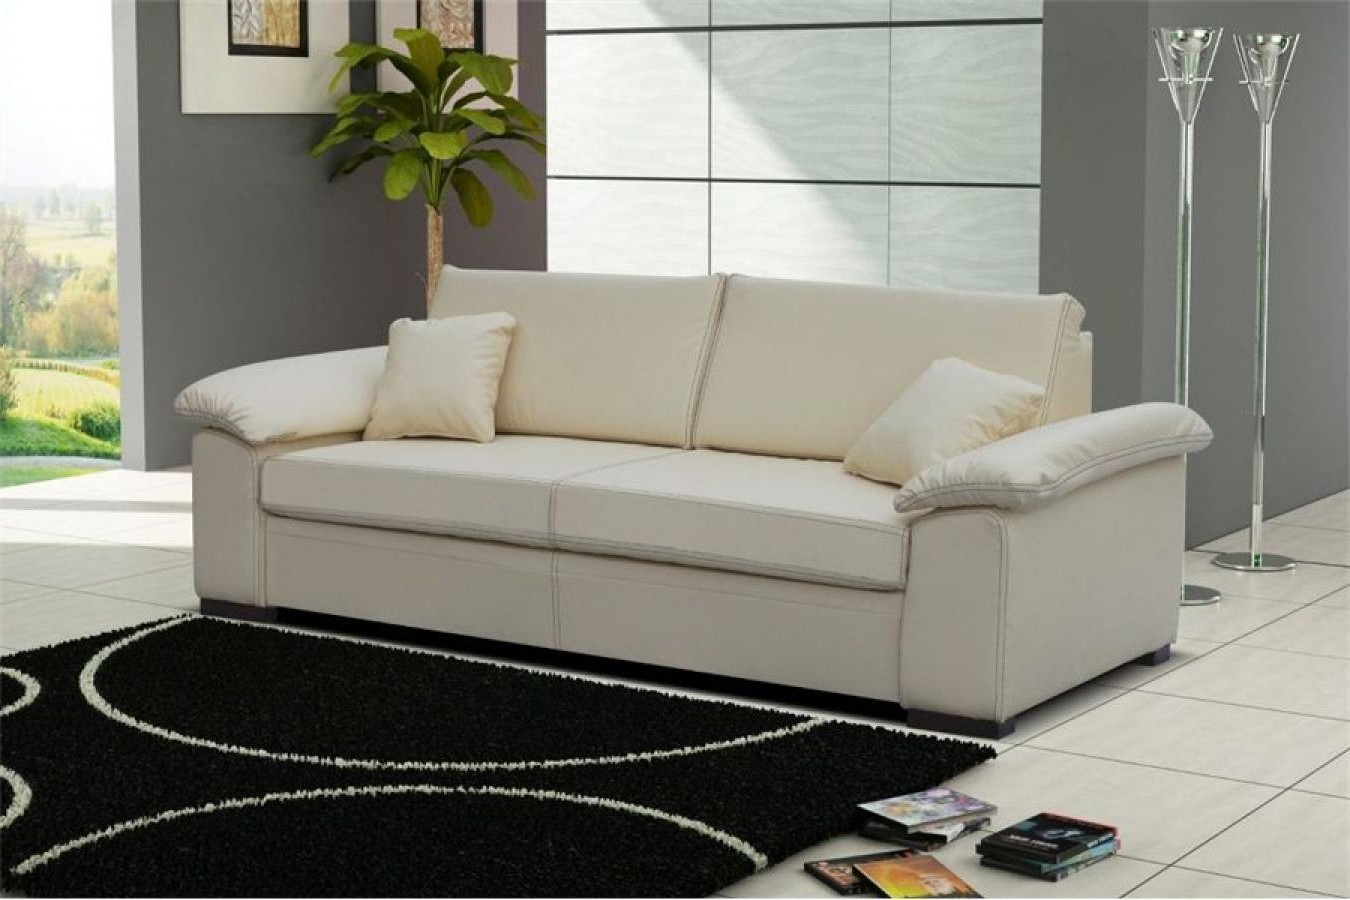 Canape Convertible 160 Couchage Quotidien Ikea